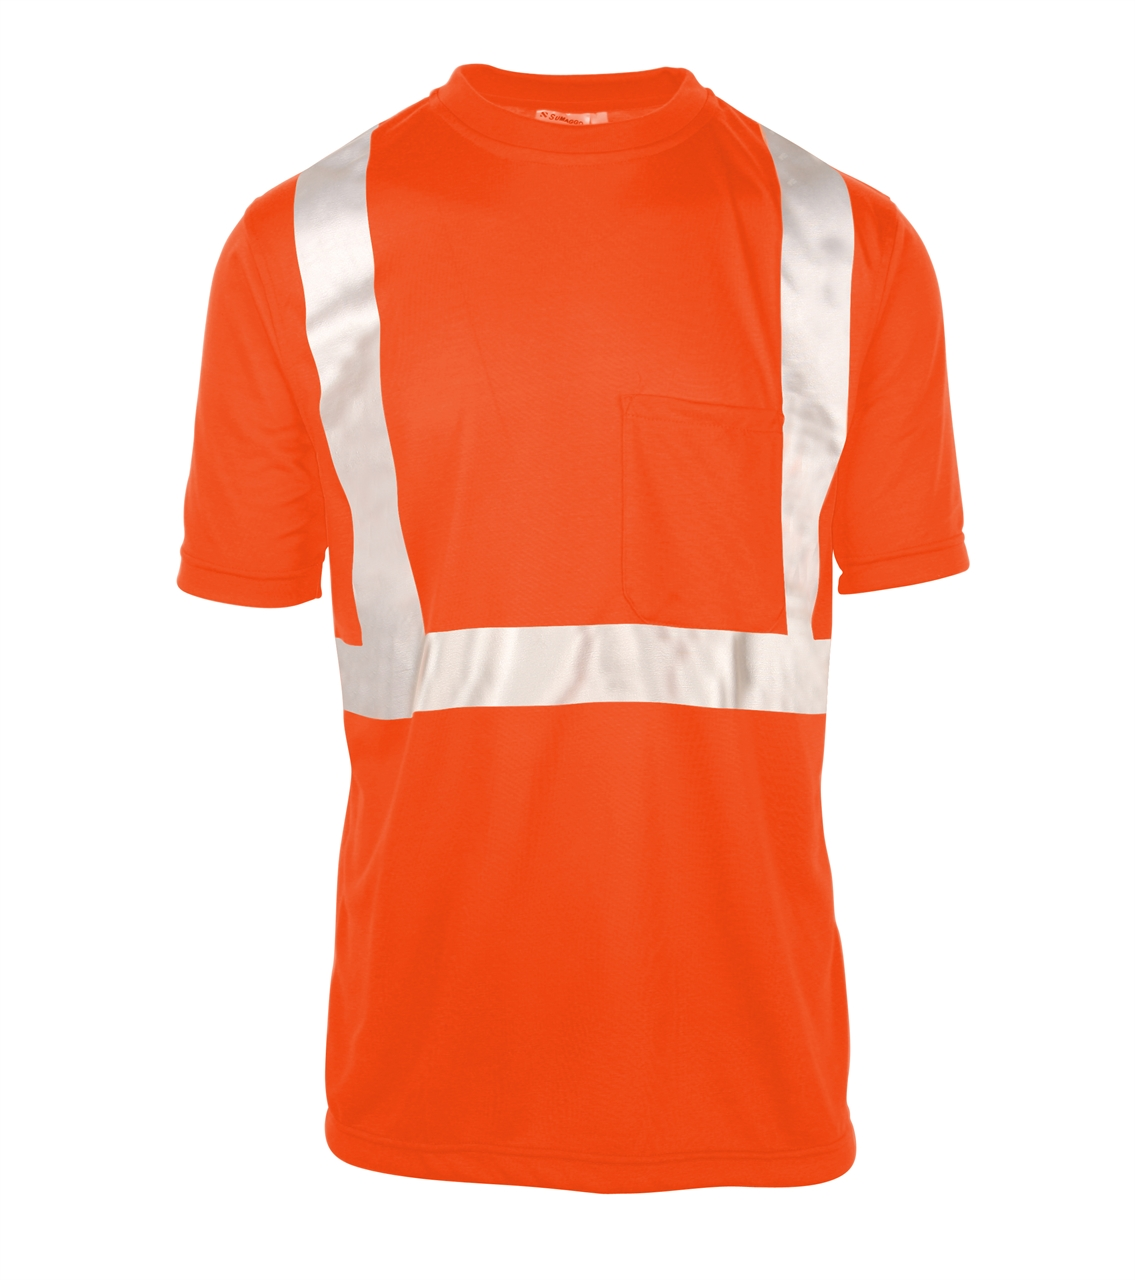 Picture of Sumaggo High Visibility Polyester Jersey T-Shirt With Pocket